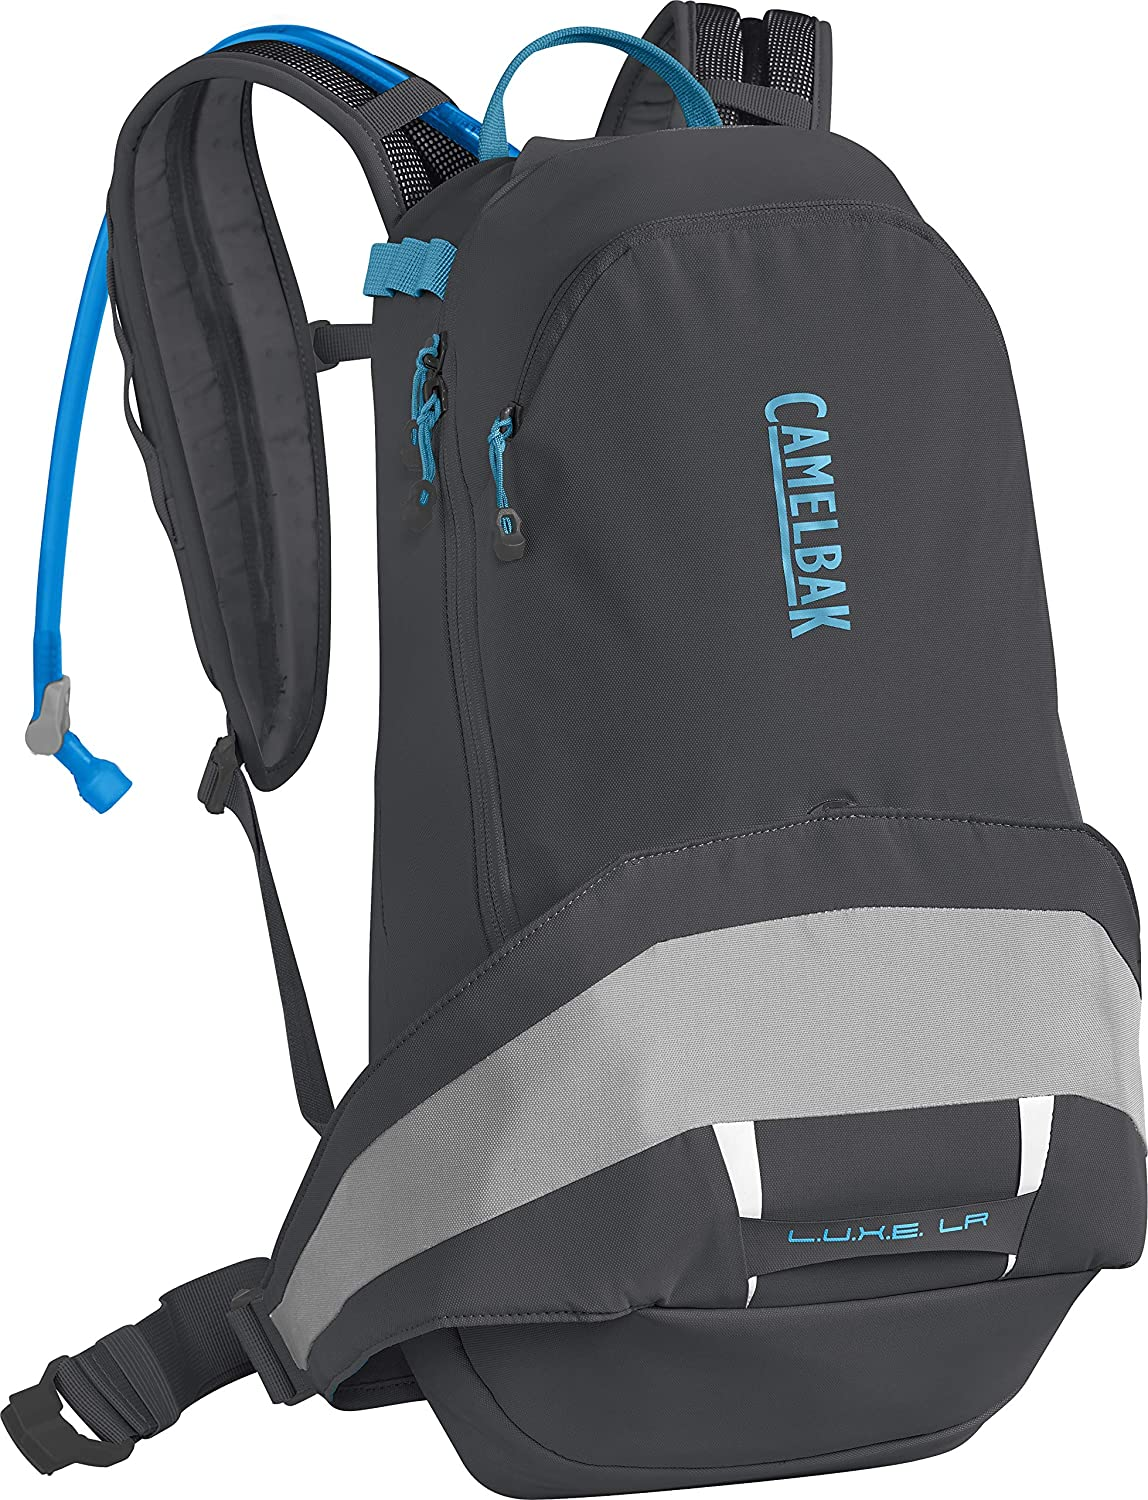 CamelBak L.U.X.E. LR 14 100oz Women s Hydration Backpack